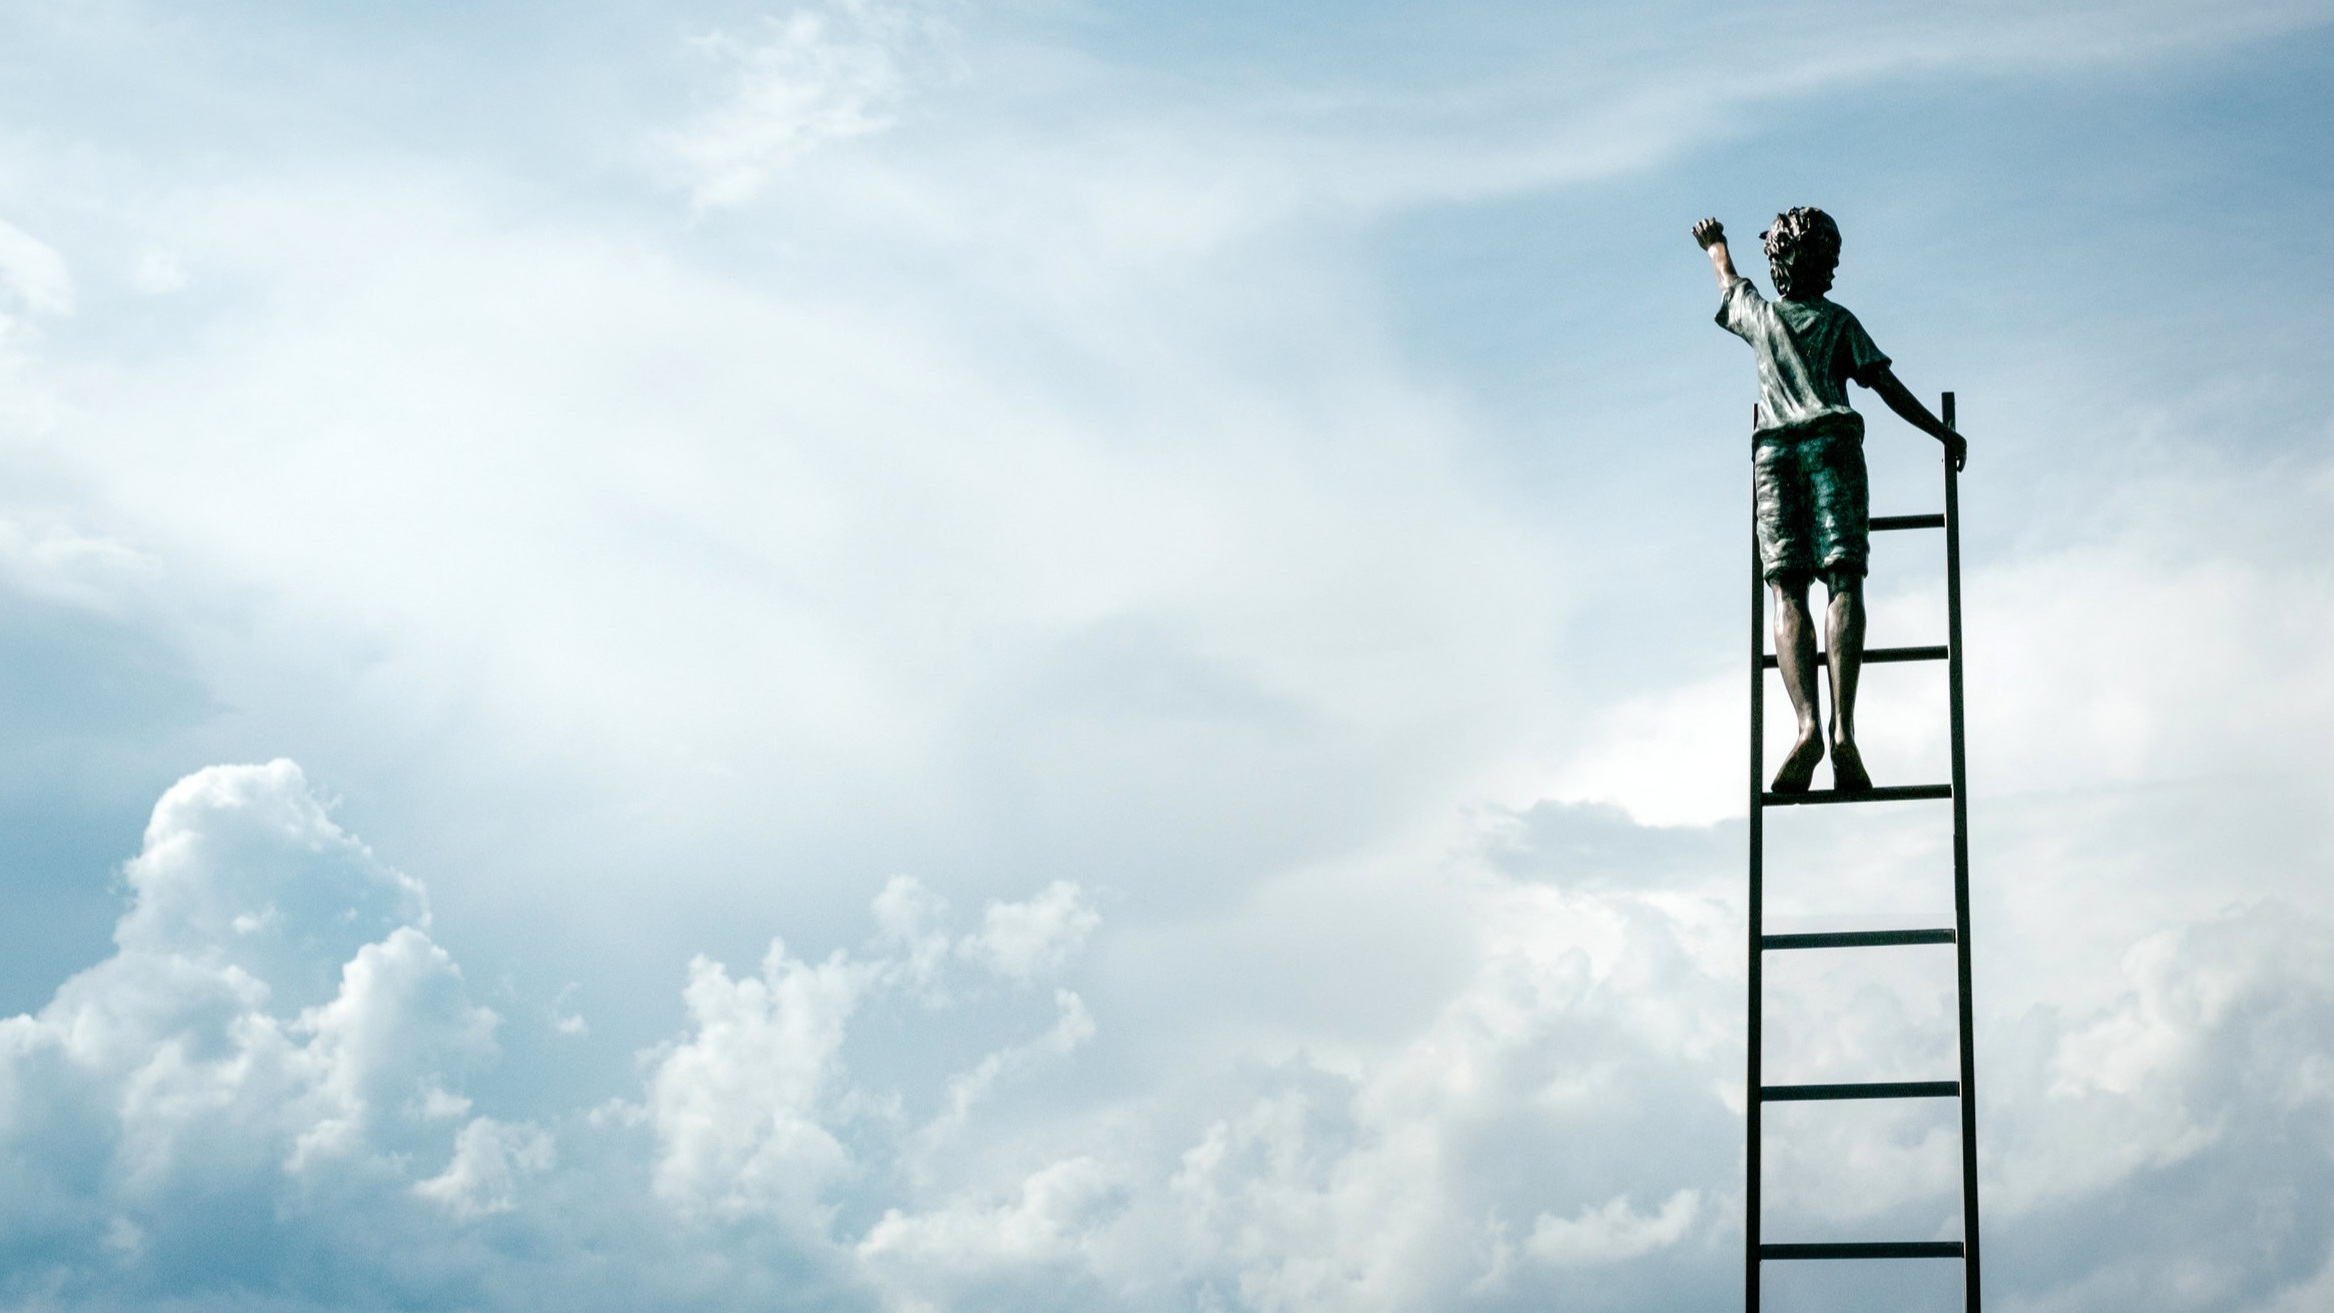 Where do you go from here? - Have you reached the top of the ladder or feel like your career has plateaued? Coaching can you help you define the next step (even if it doesn't exist yet!)